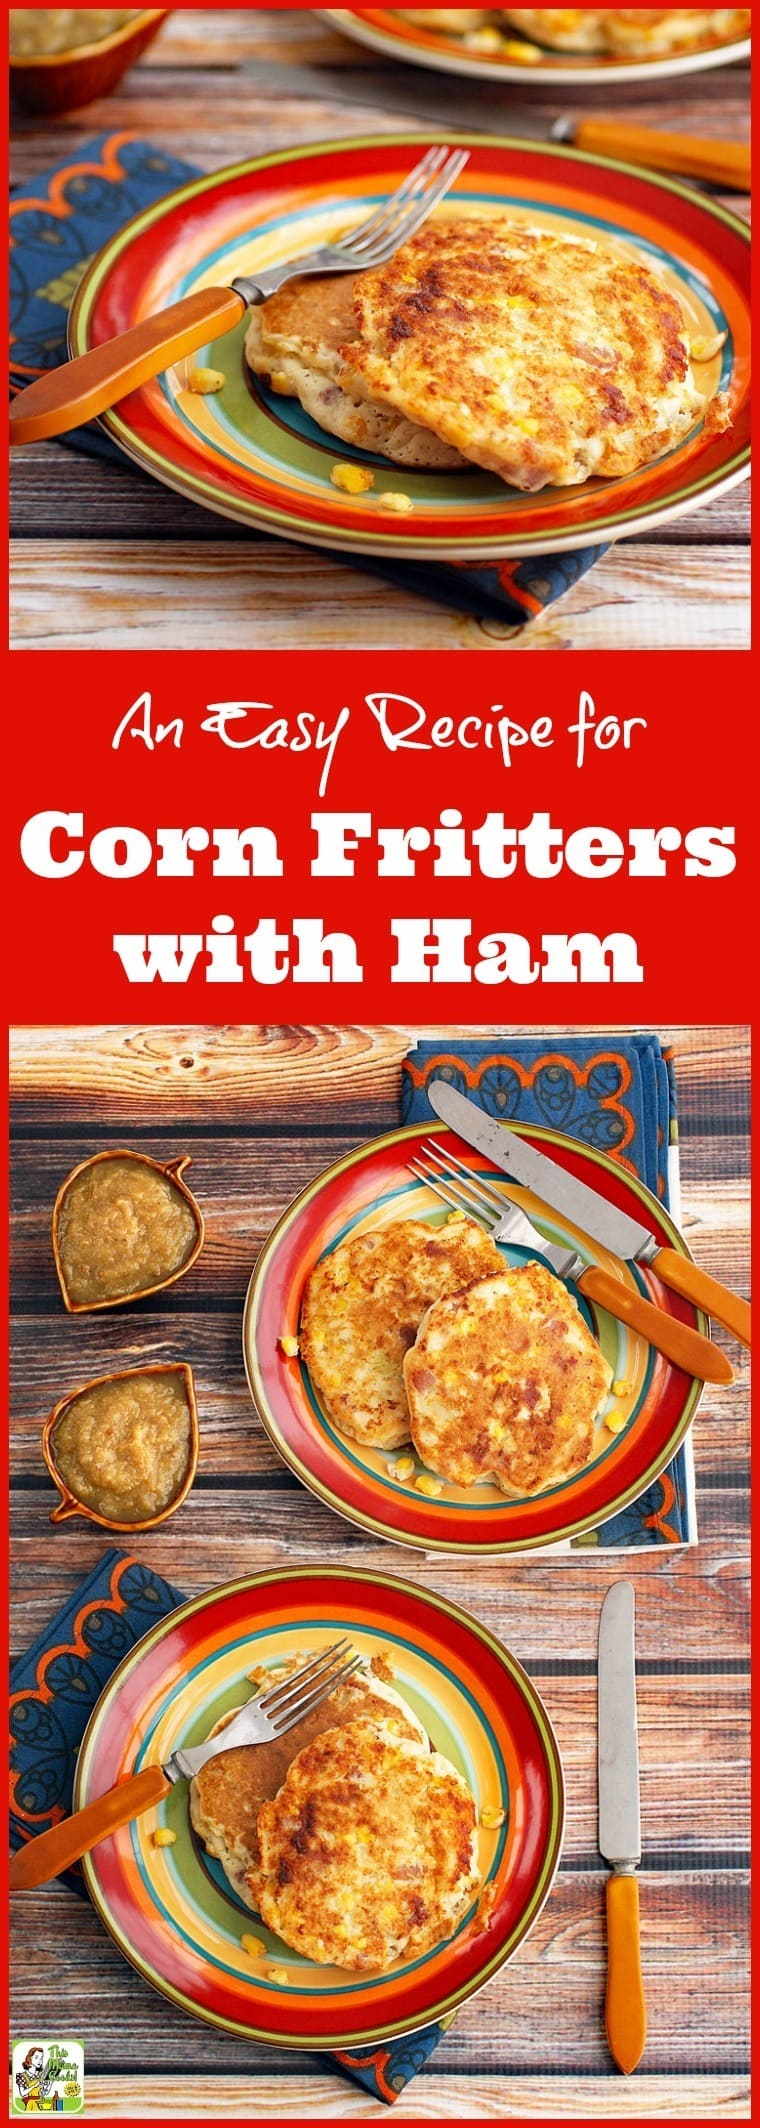 An Easy Recipe for Corn Fritters with Ham for Pancake Day! Click to get this gluten free and dairy free pancake breakfast and brinner recipe. Don't celebrate Shrove Tuesday without them!